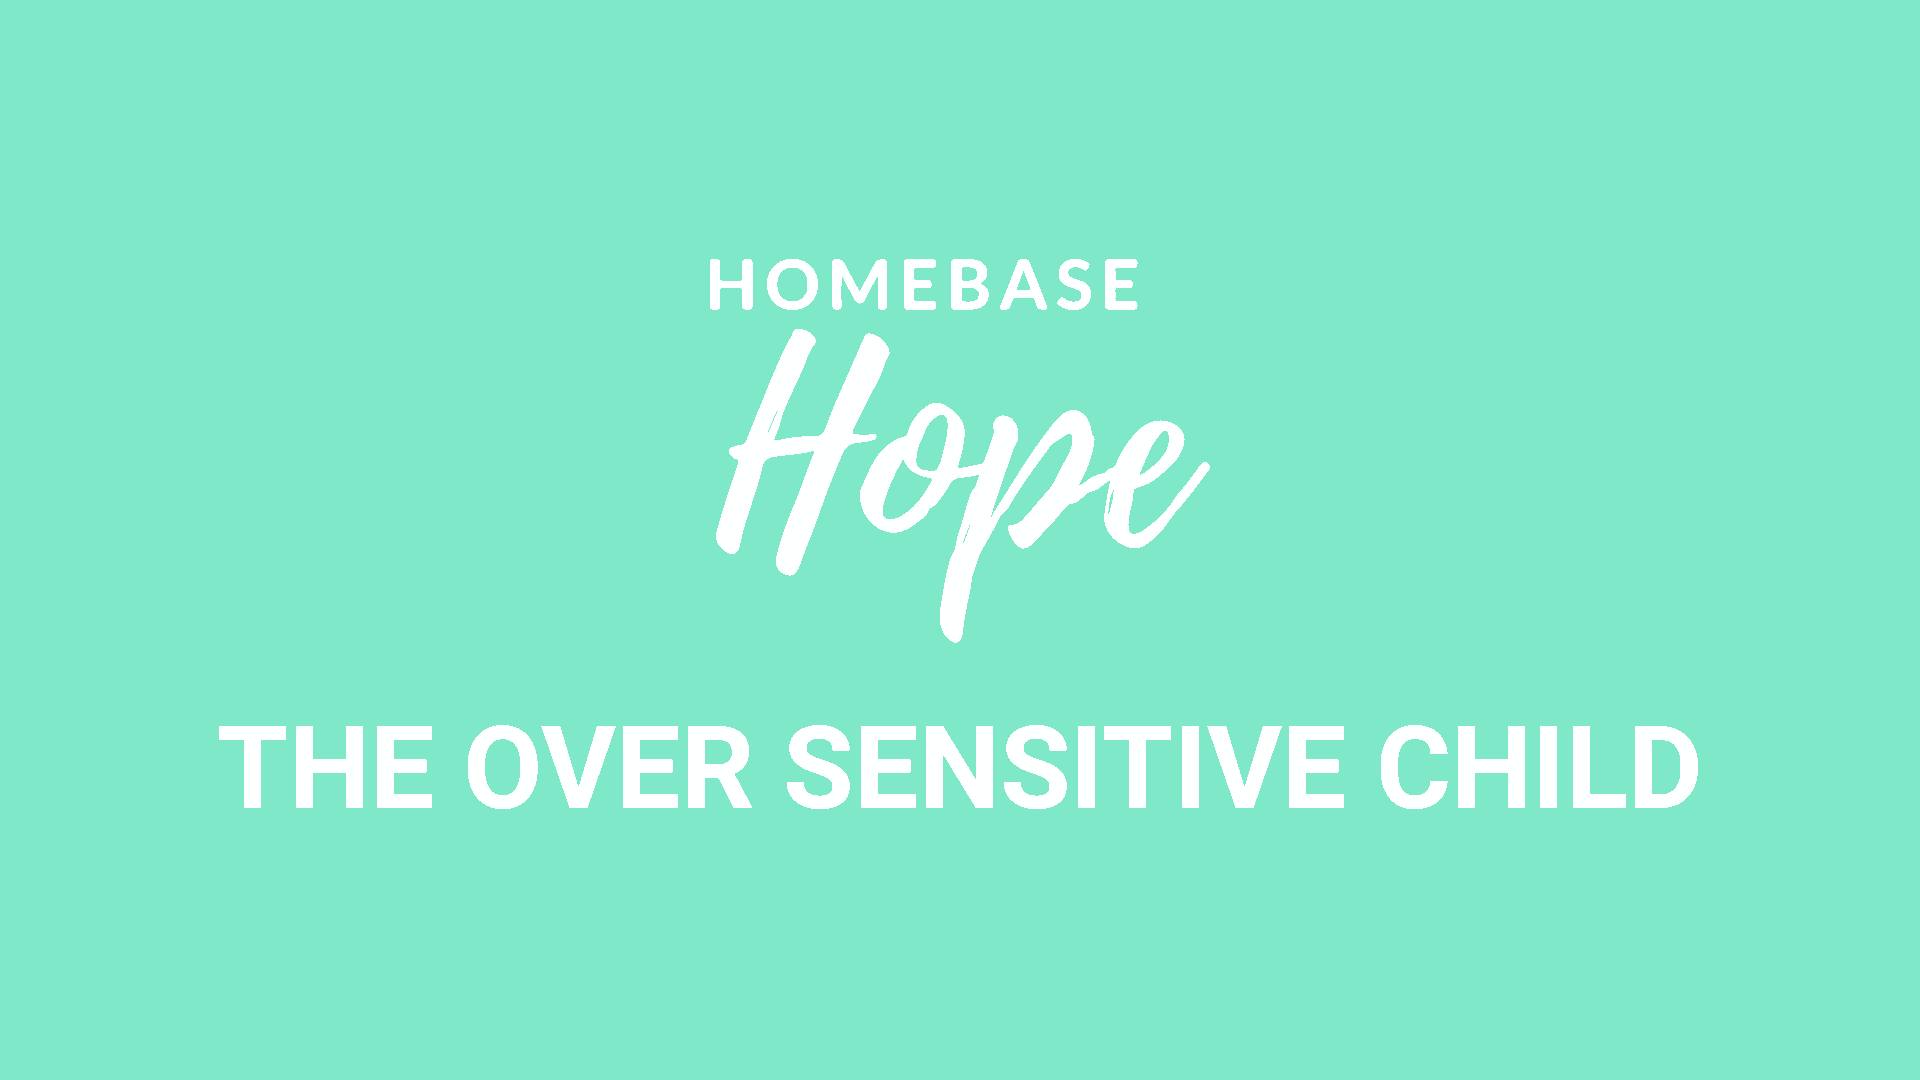 Homebase Hope The Over Sensitive Child video explainer